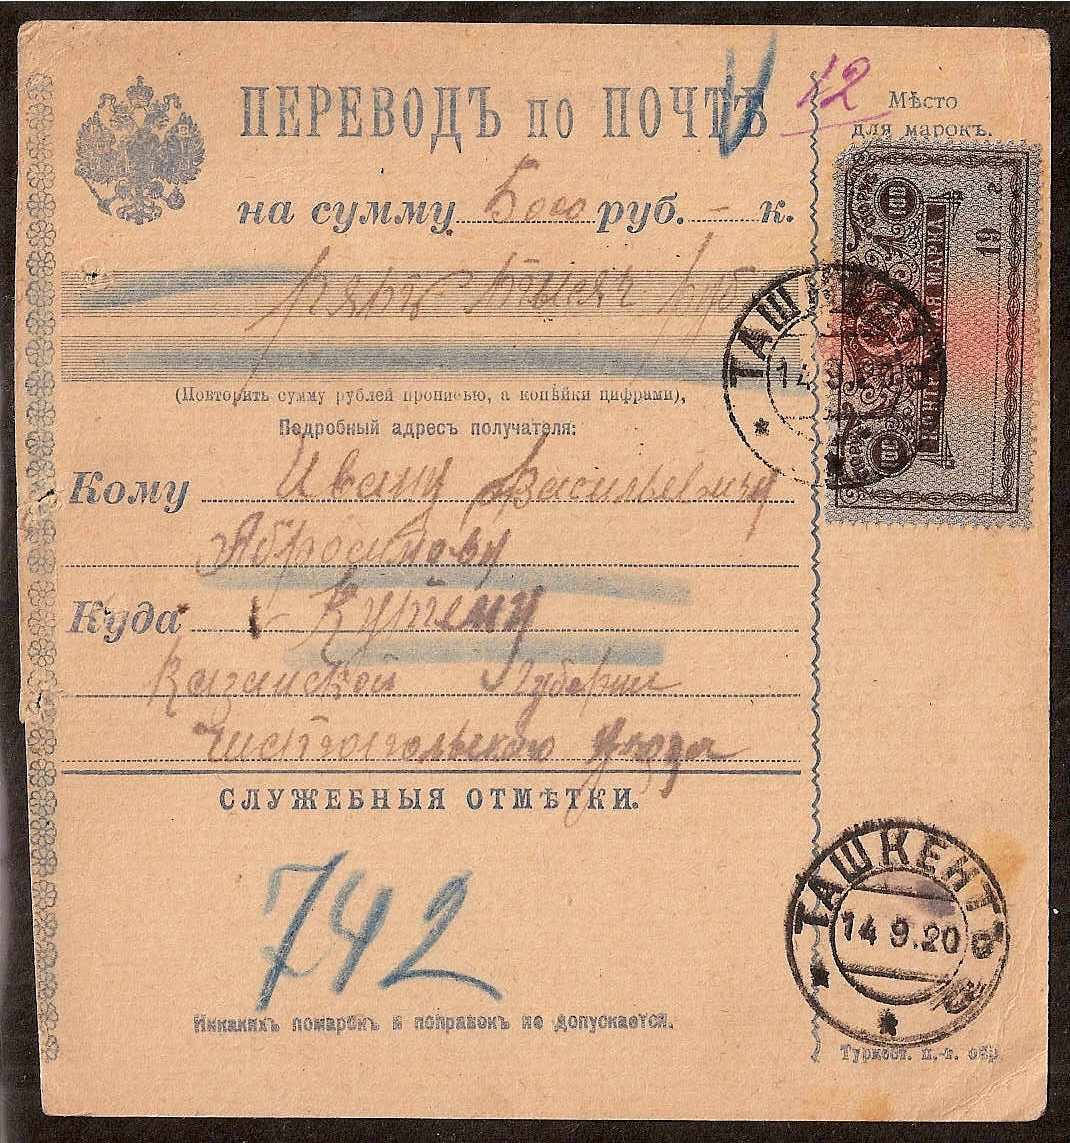 Russia Postal History - Soviet Federation Republic RUSSIAN SOVIET FEDERATED REP. Scott 1920